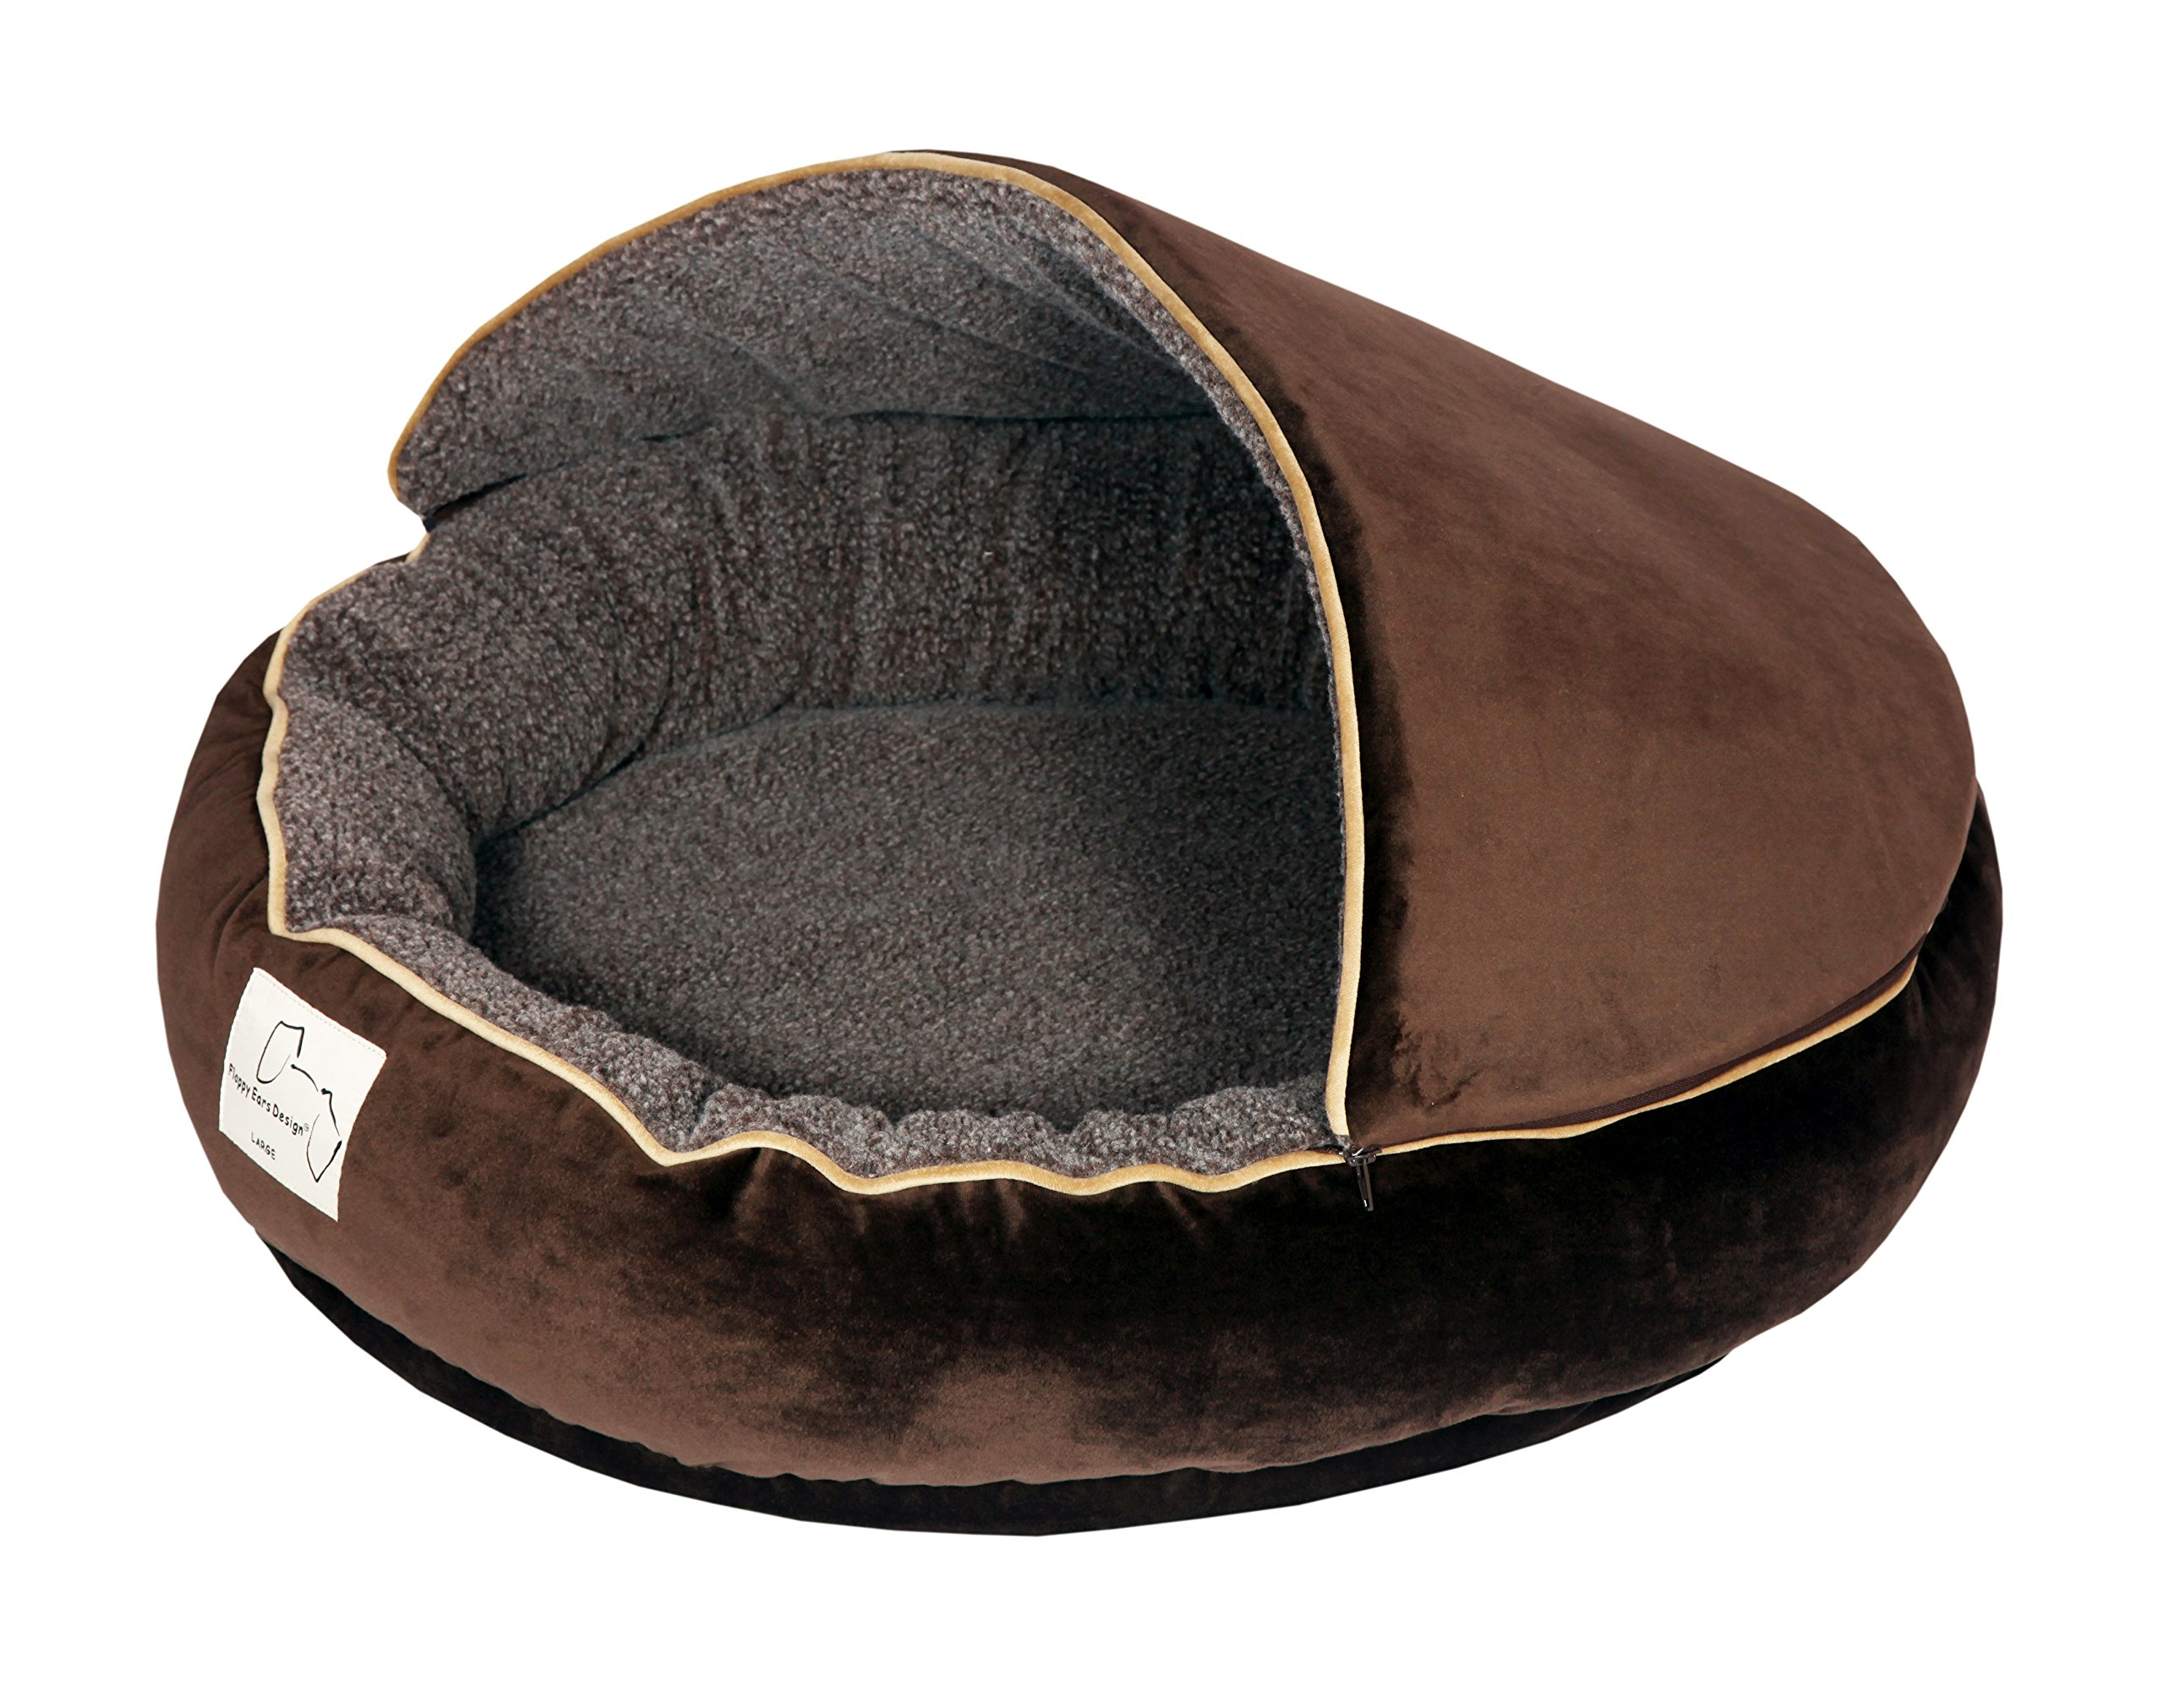 Floppy Ears Design Microfiber and Fleece Hooded Pet Bed (Large, Chocolate)